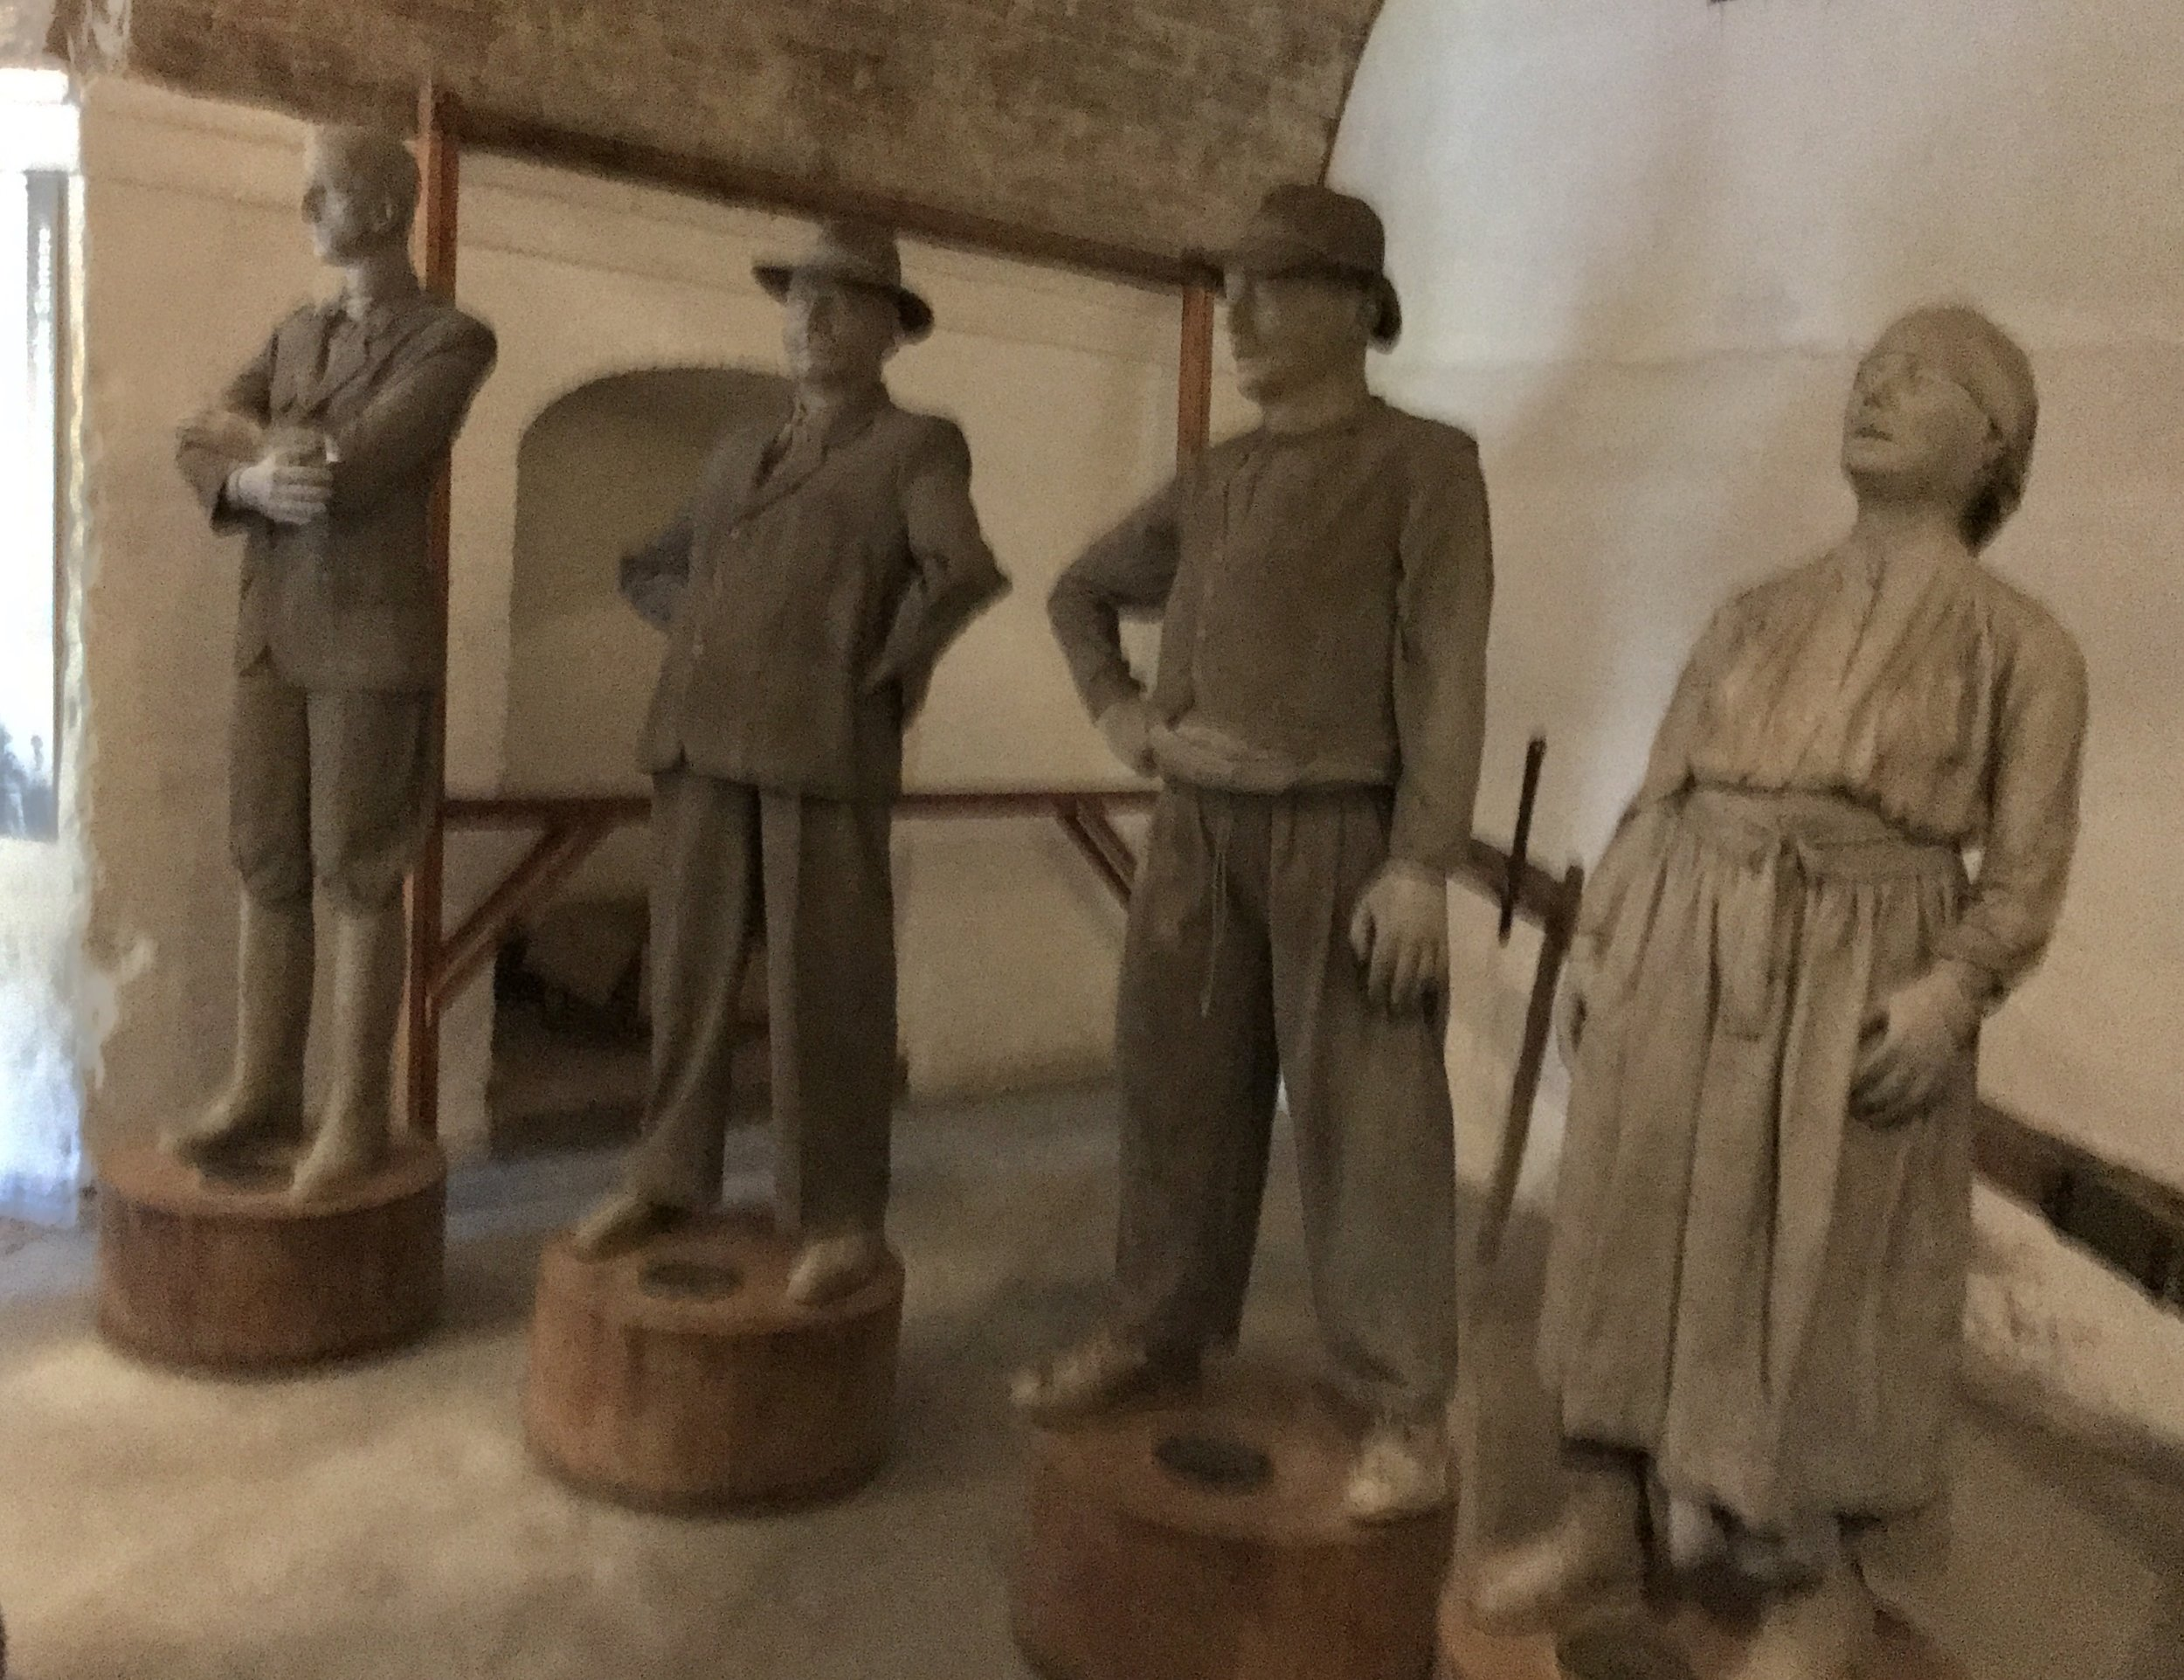 left to right; the land owner, the supervisor and the farm workers, also known as share croppers.